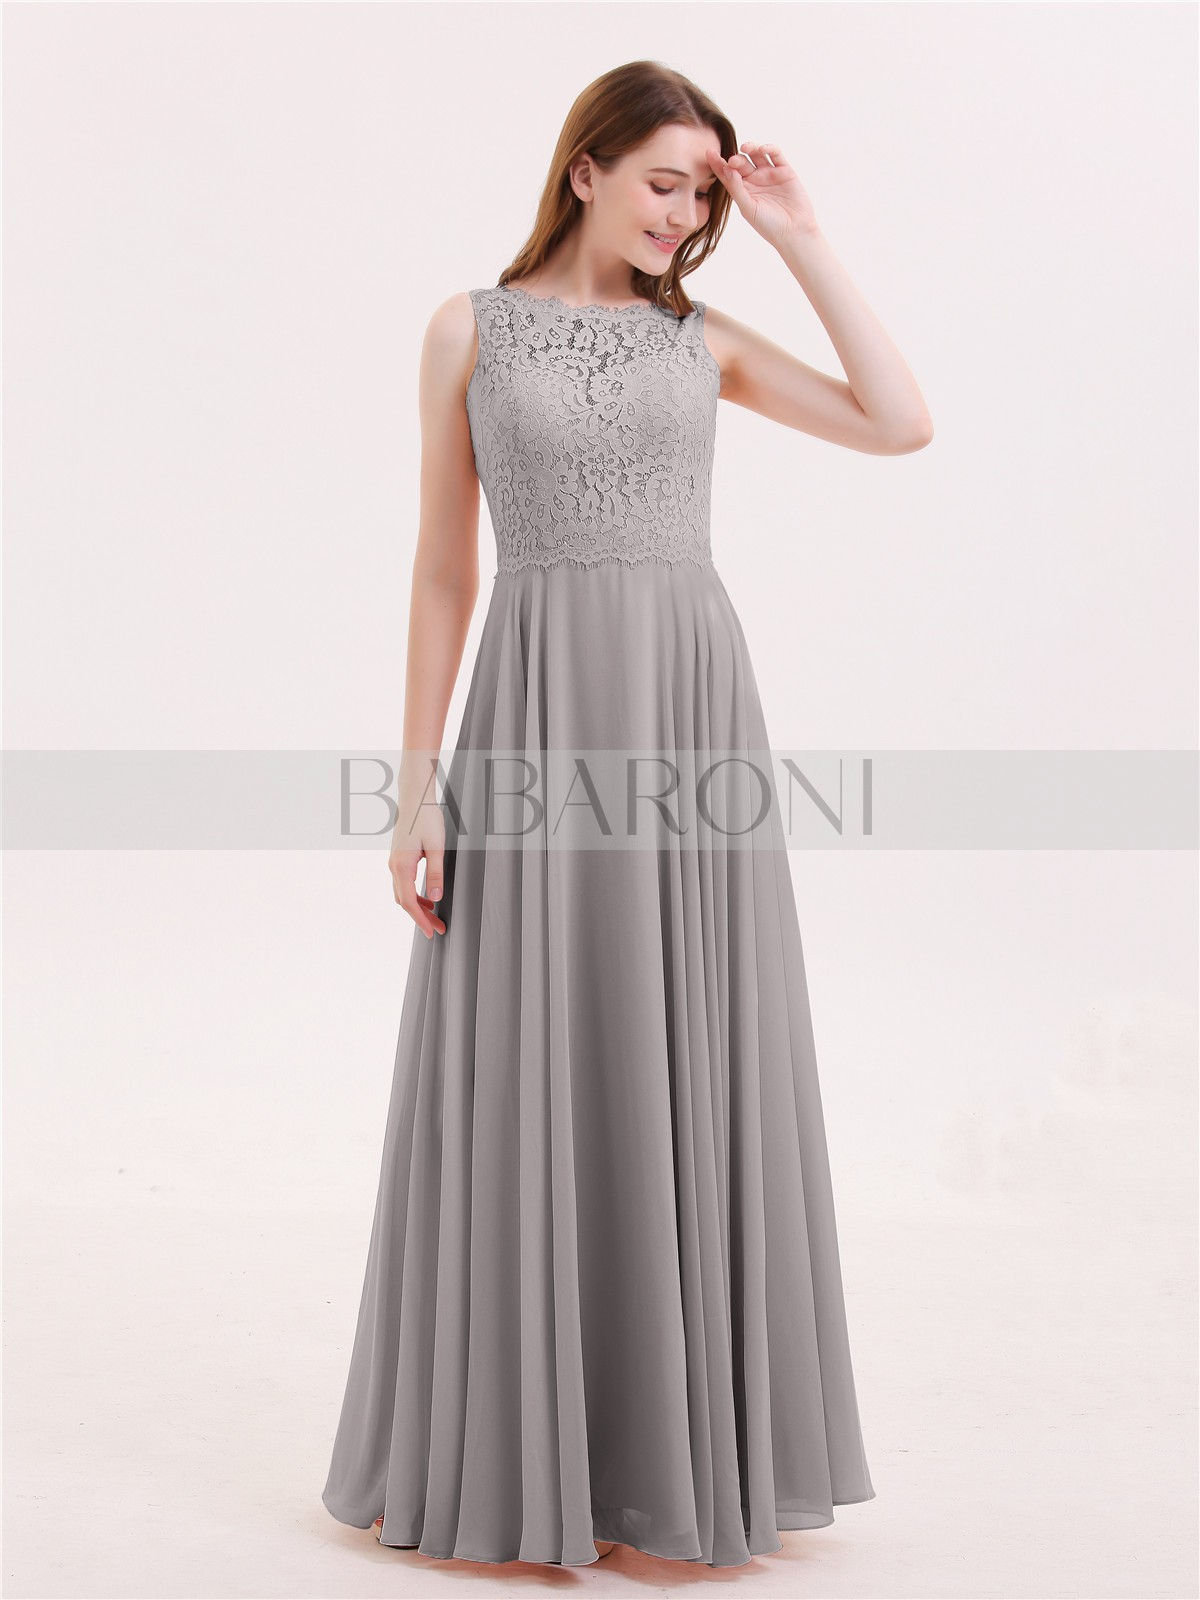 kleid mit spitzenoberteil hot 16b16 16add